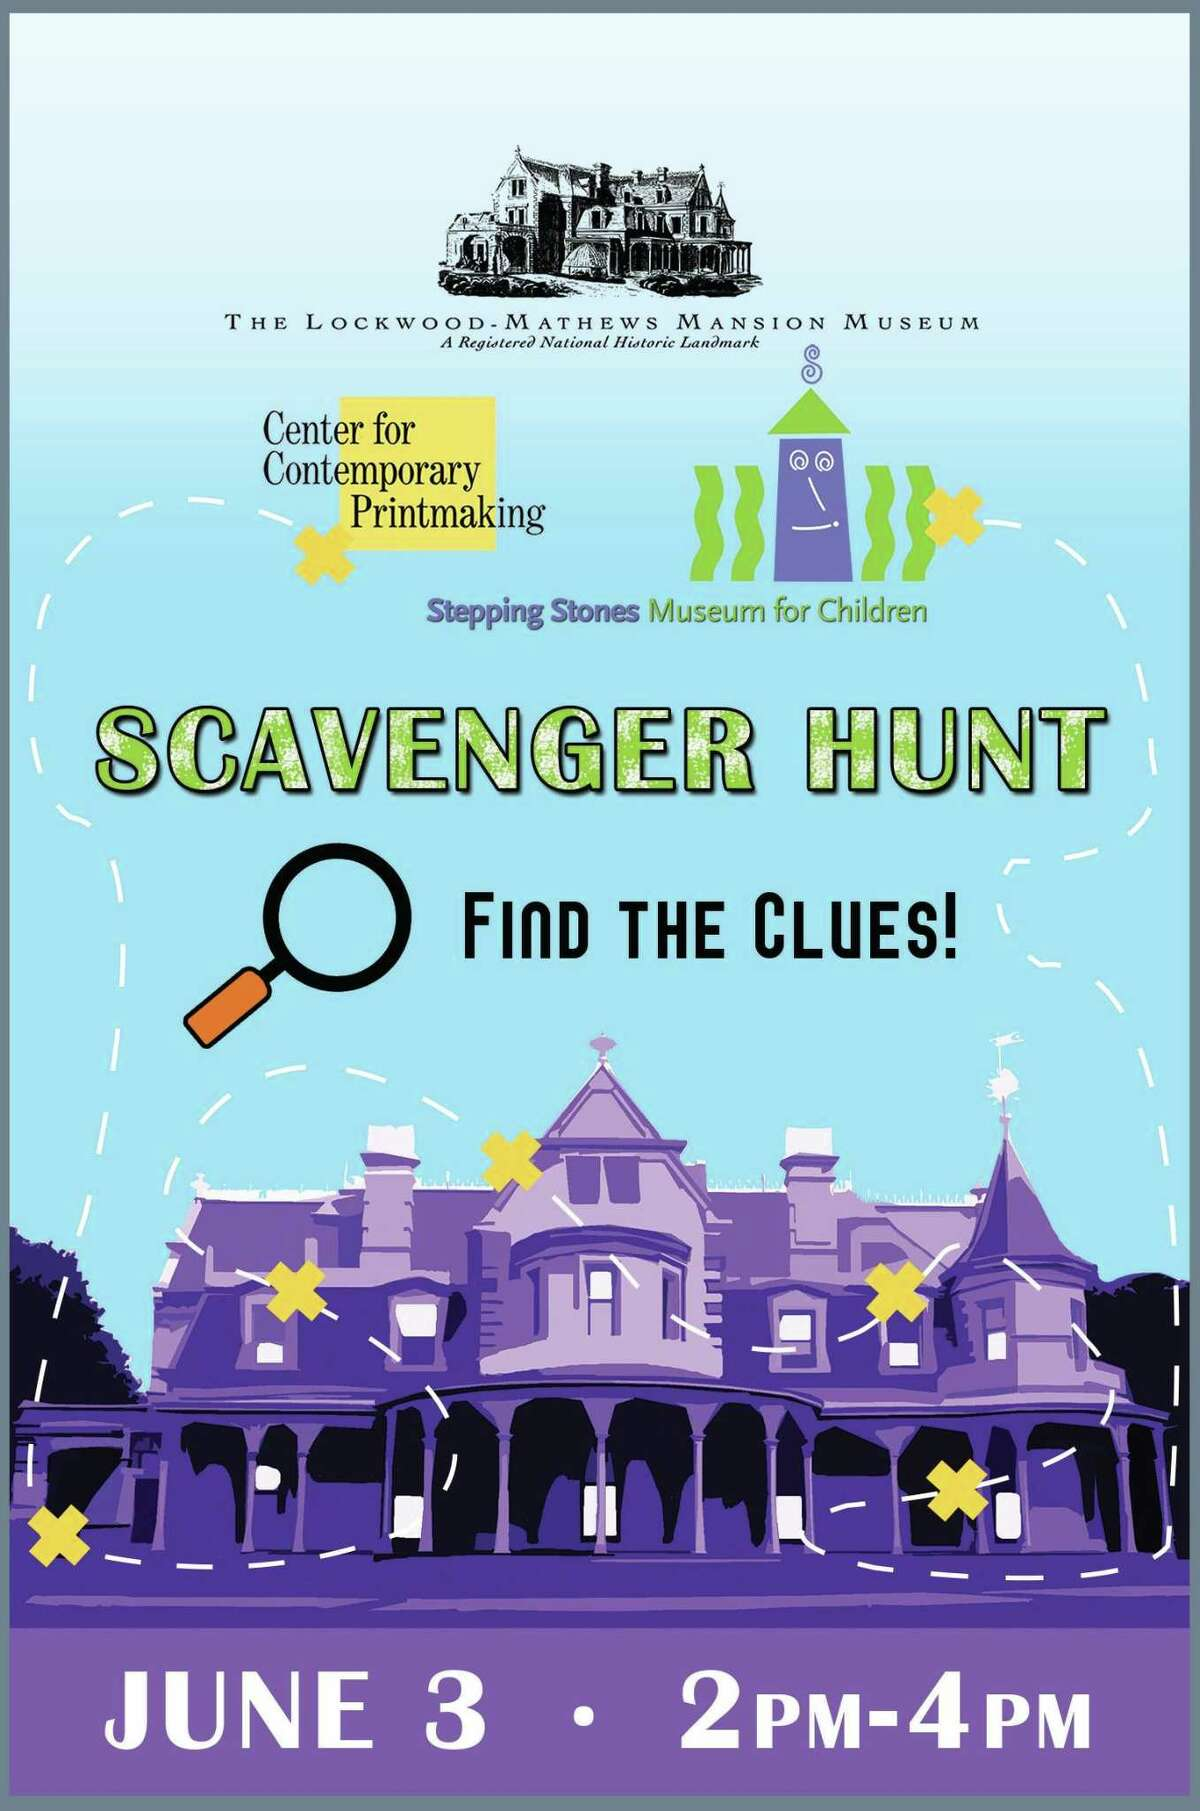 The Lockwood-Mathews Mansion Museum, in association with the Center for Contemporary Printmaking and the Stepping Stones Museum for Children, will host a Scavenger Hunt June 3 at Mathews Park in Norwalk.